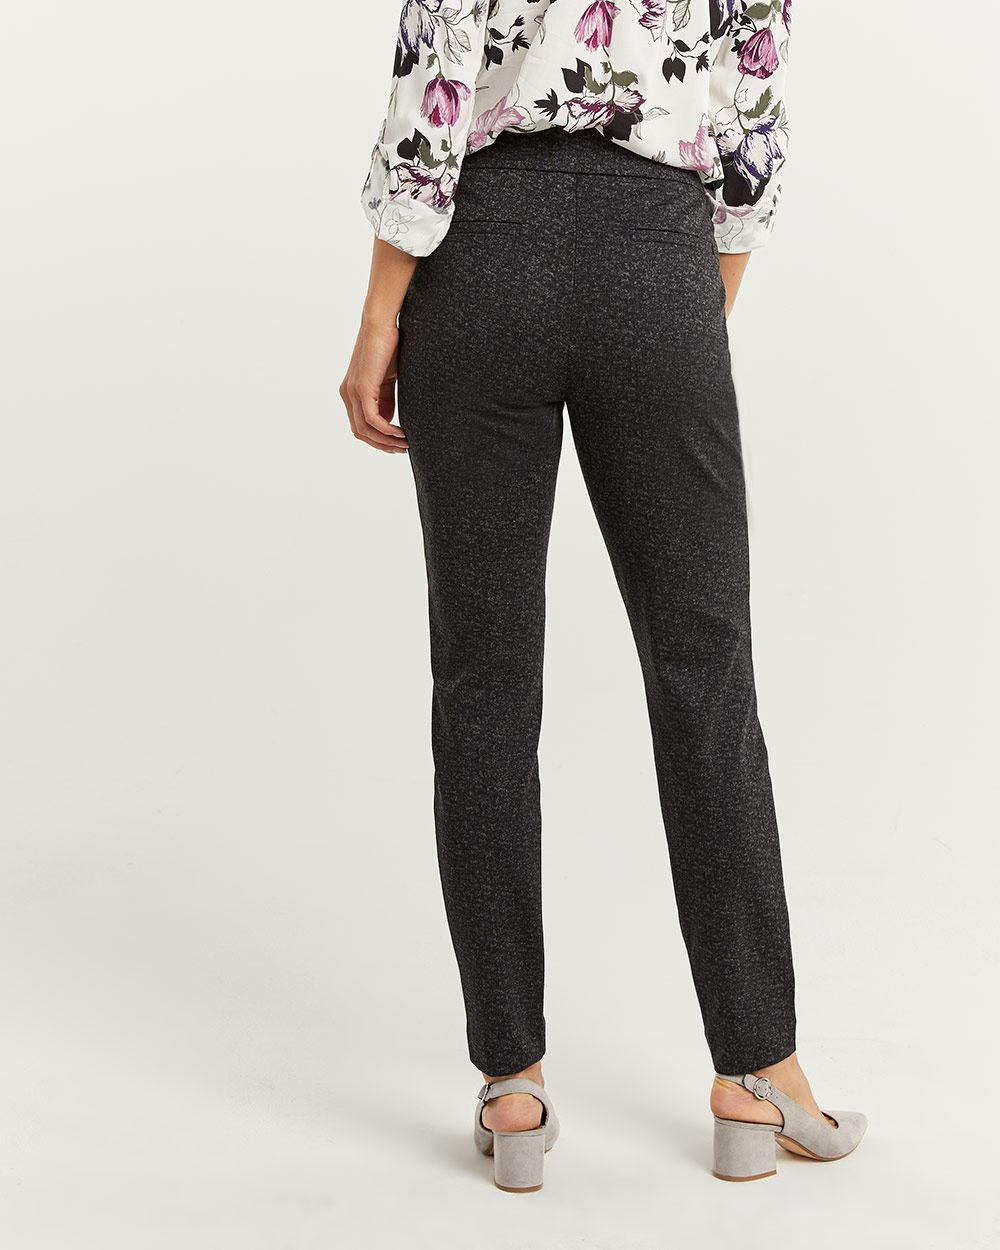 Patterned Leggings The Modern Stretch